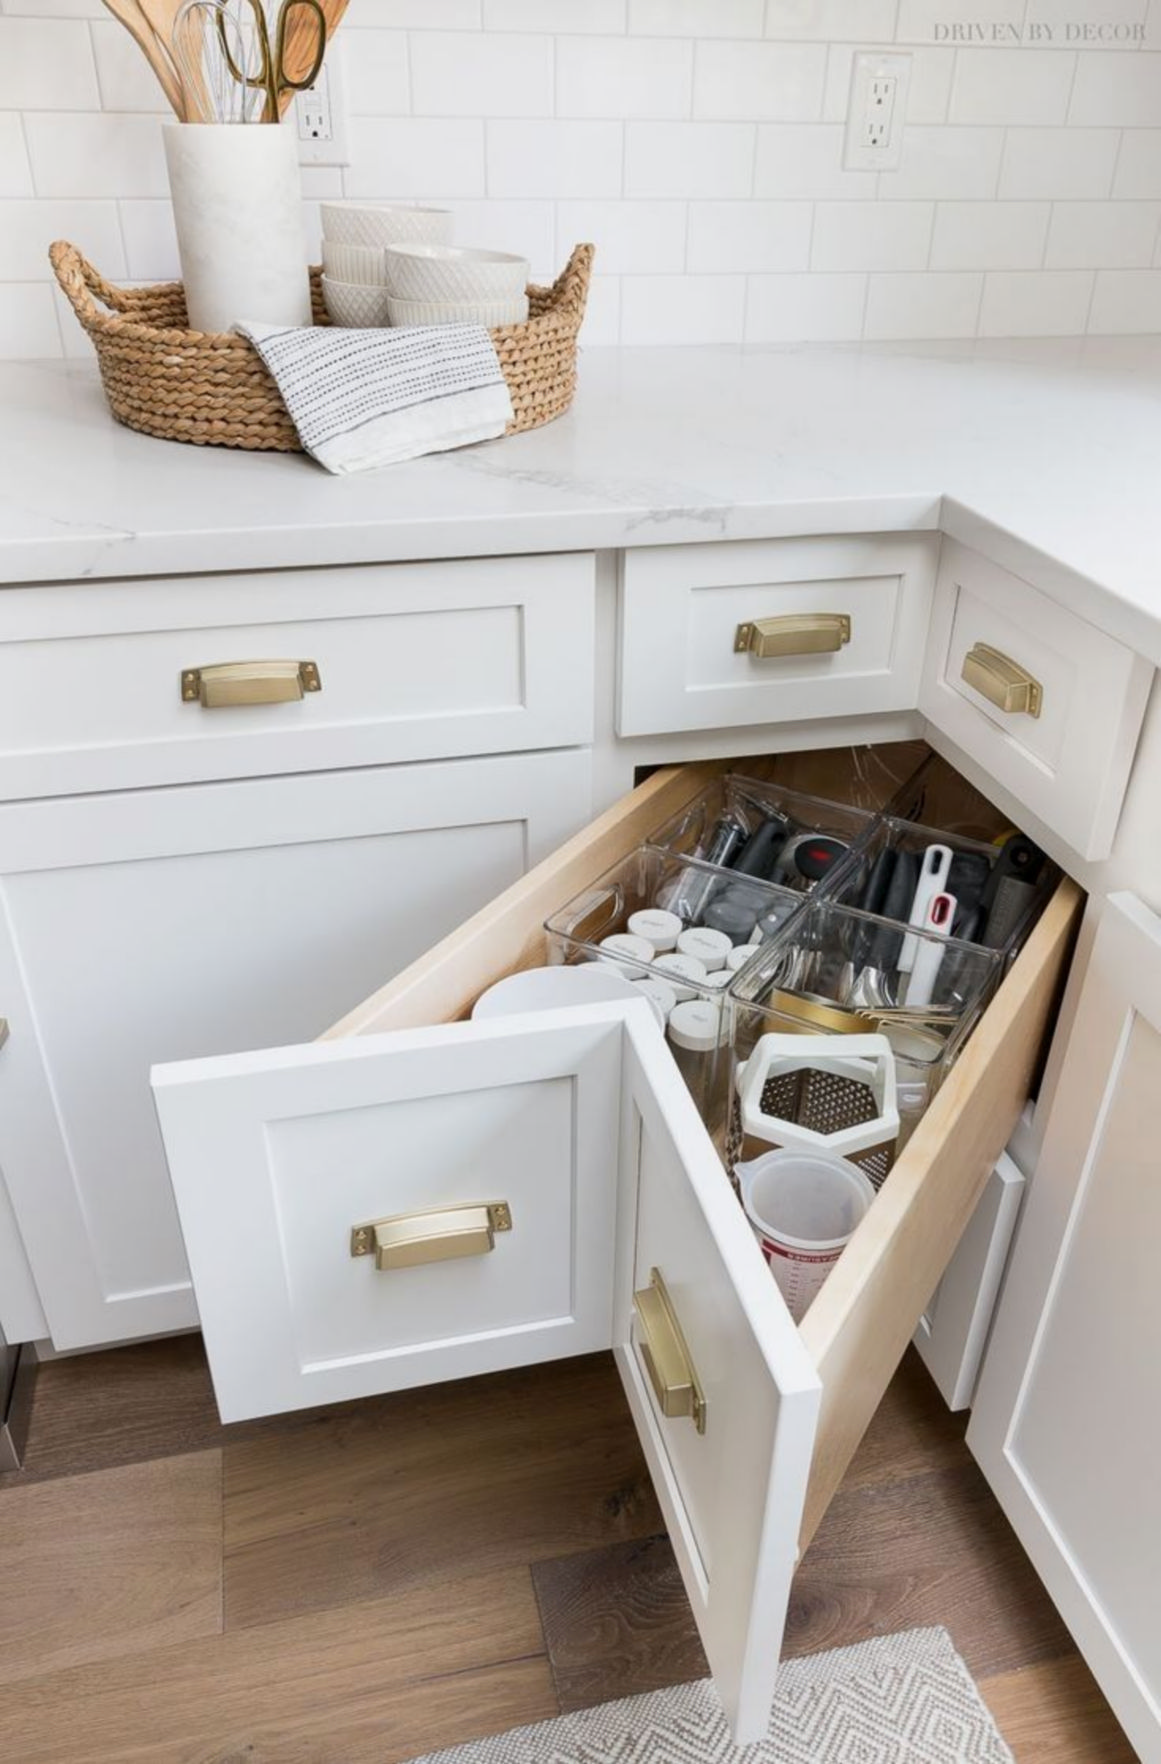 10 clever ideas to make a small kitchen look like a bigger one 23